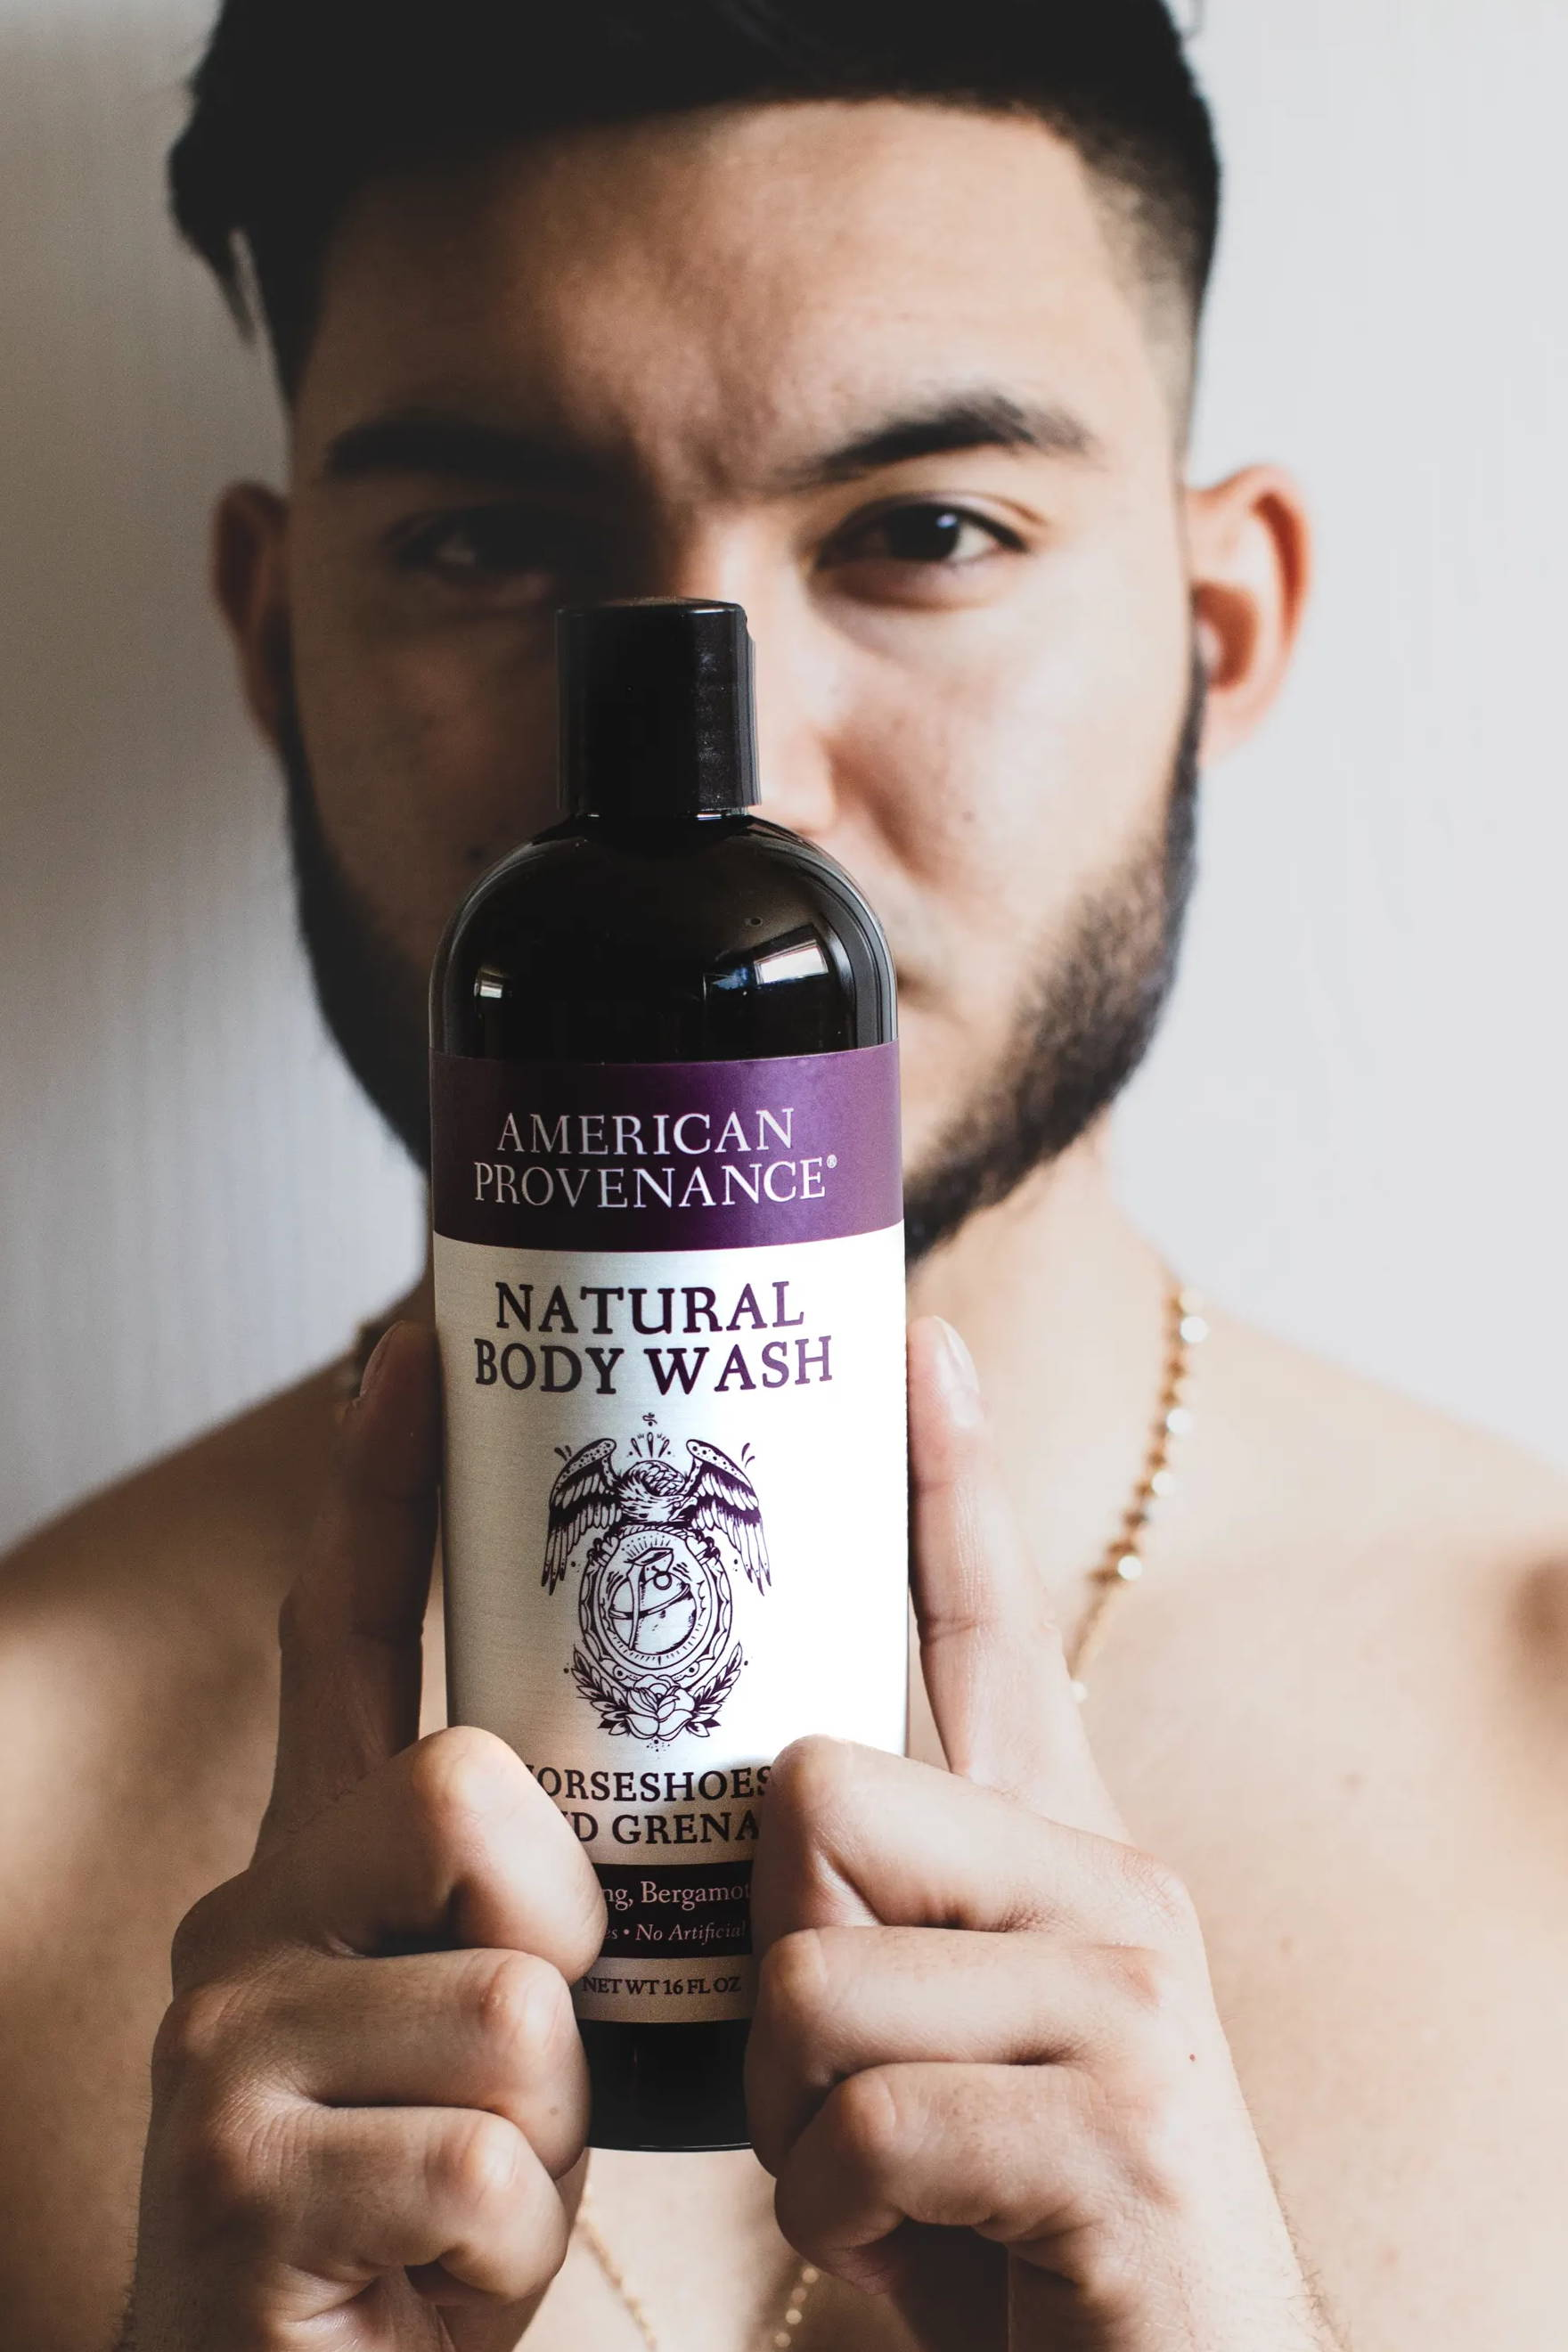 man holding body wash bottle